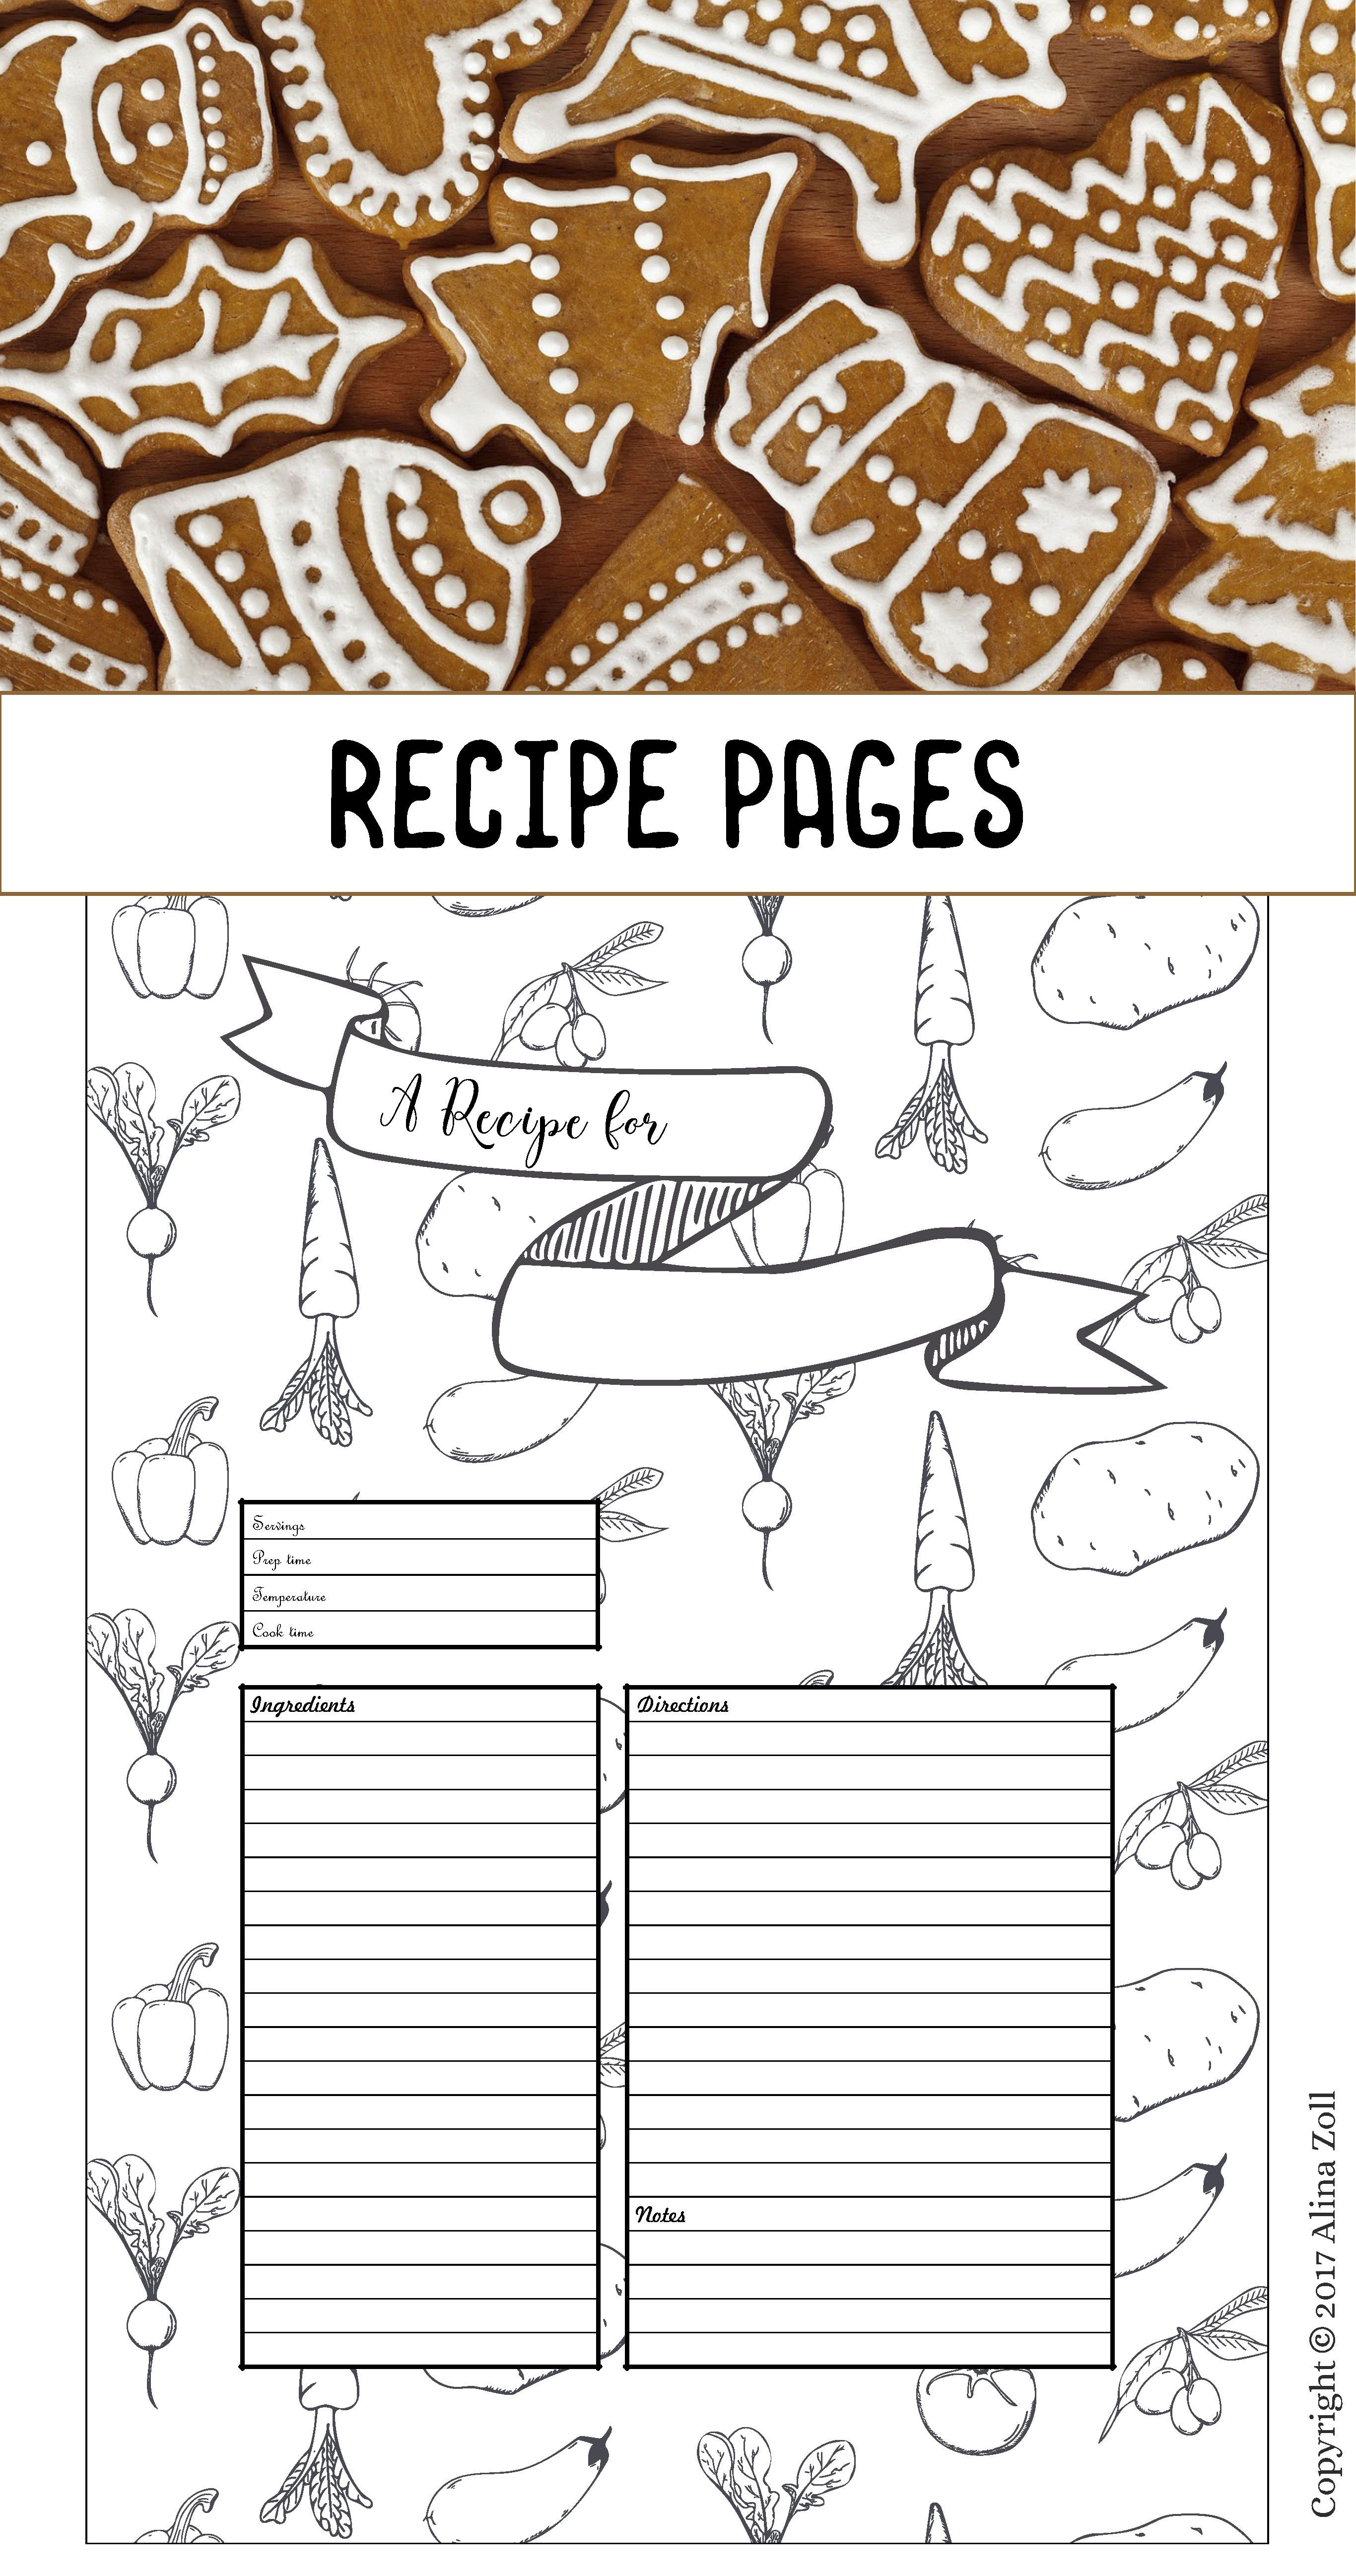 Recipe Template Printable Recipe Pages Layouts Blank Recipe Book Pdf Recipe Cards A4 Recipe Sheets Instant Download Recipe Cards Template Christmas Recipe Cards Recipe Template Printable